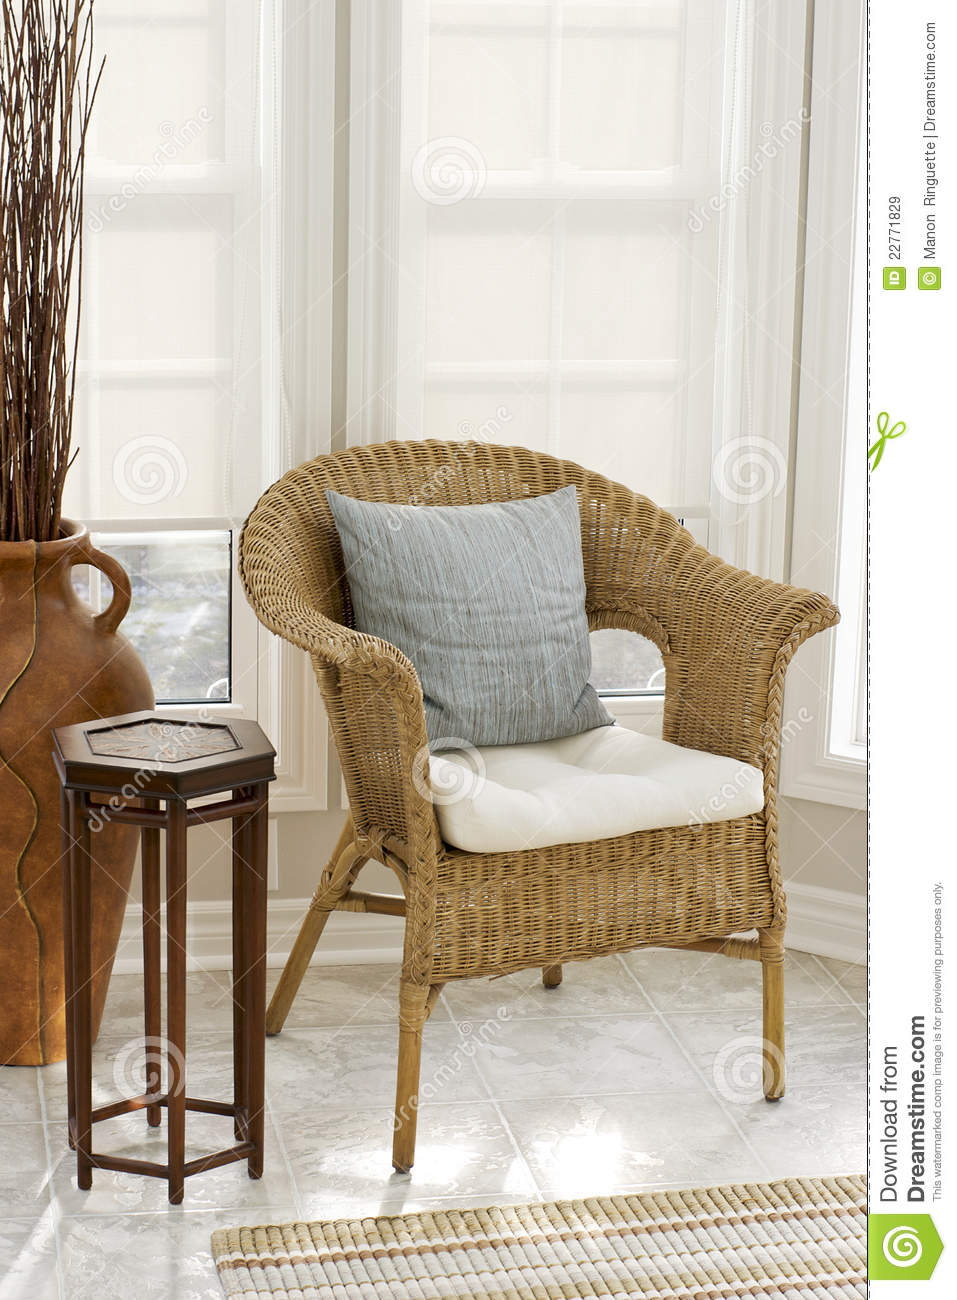 bamboo chairs shelby williams home decor - wicker chair in sun room stock image image: 22771829